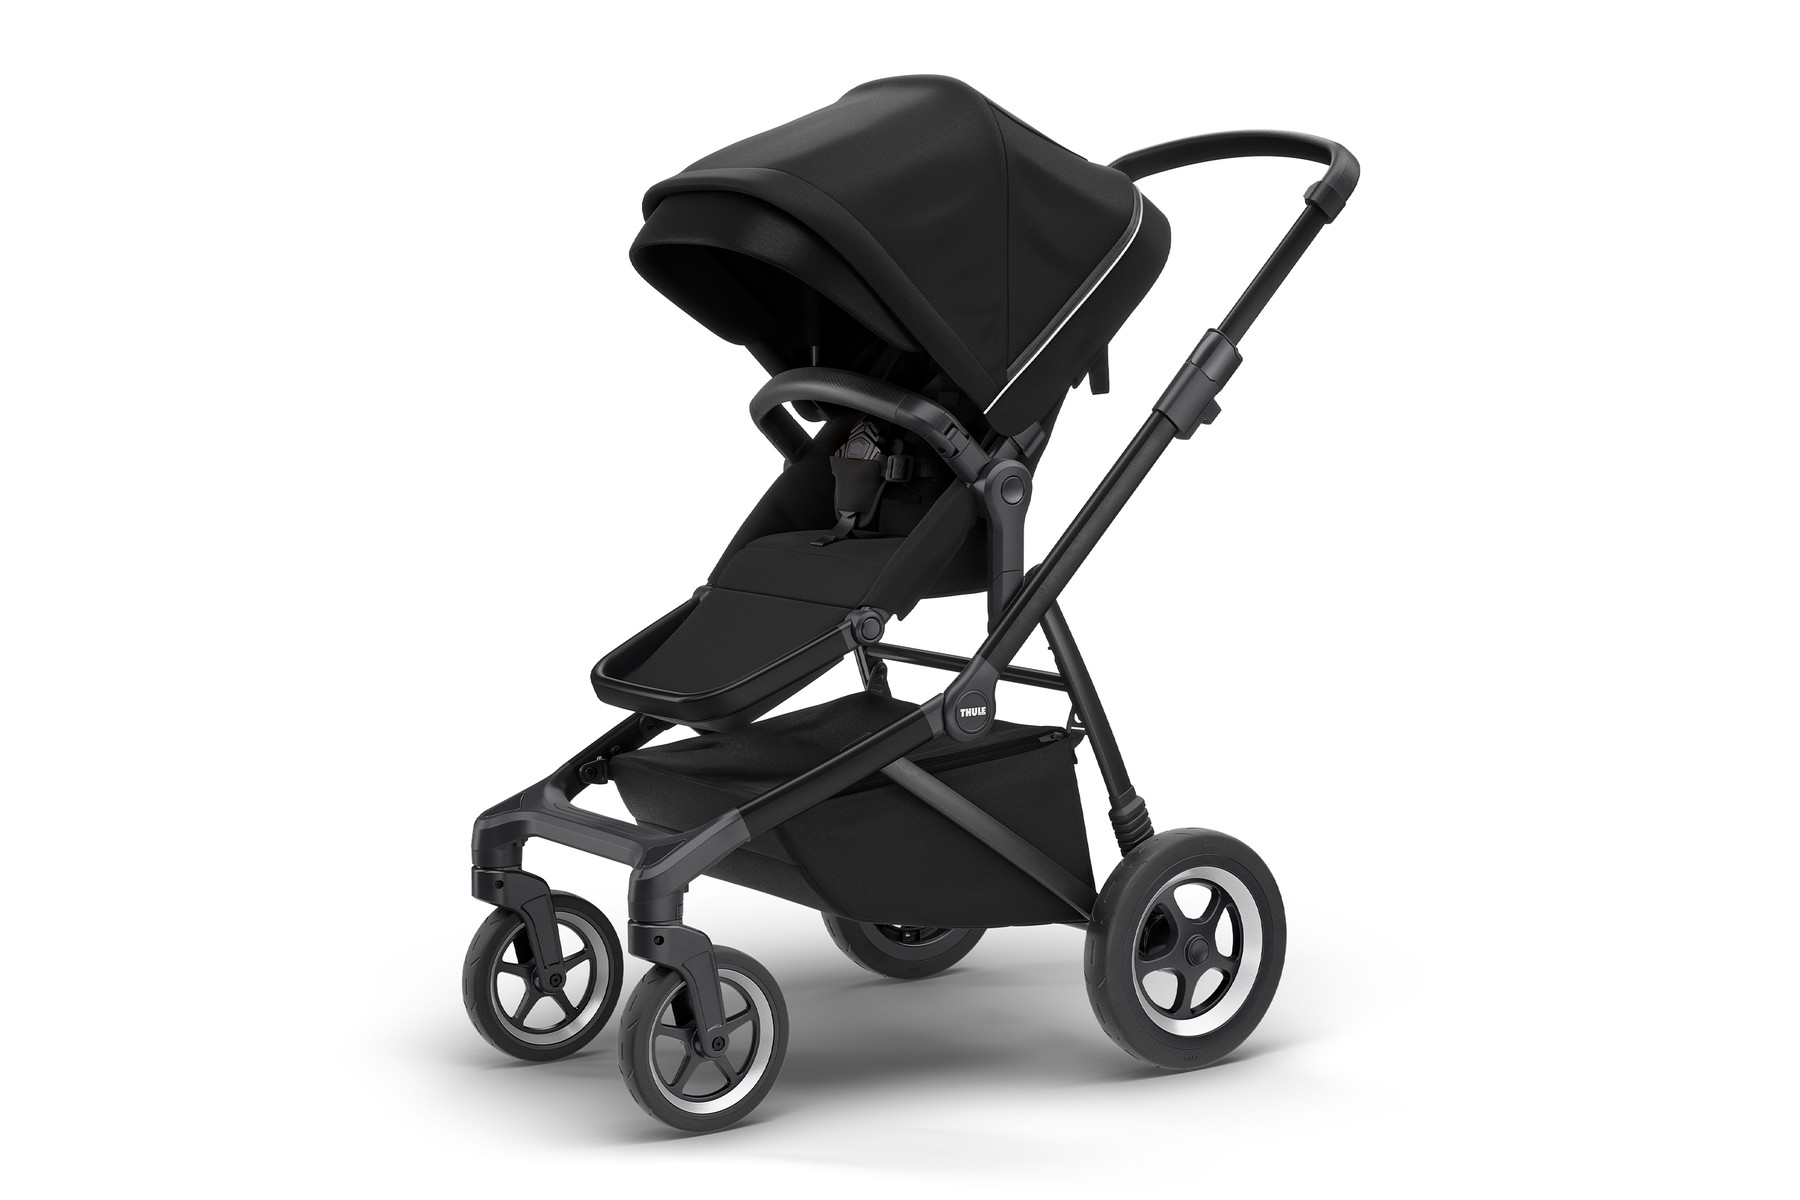 Thule Sleek Midnight Black-on-Black